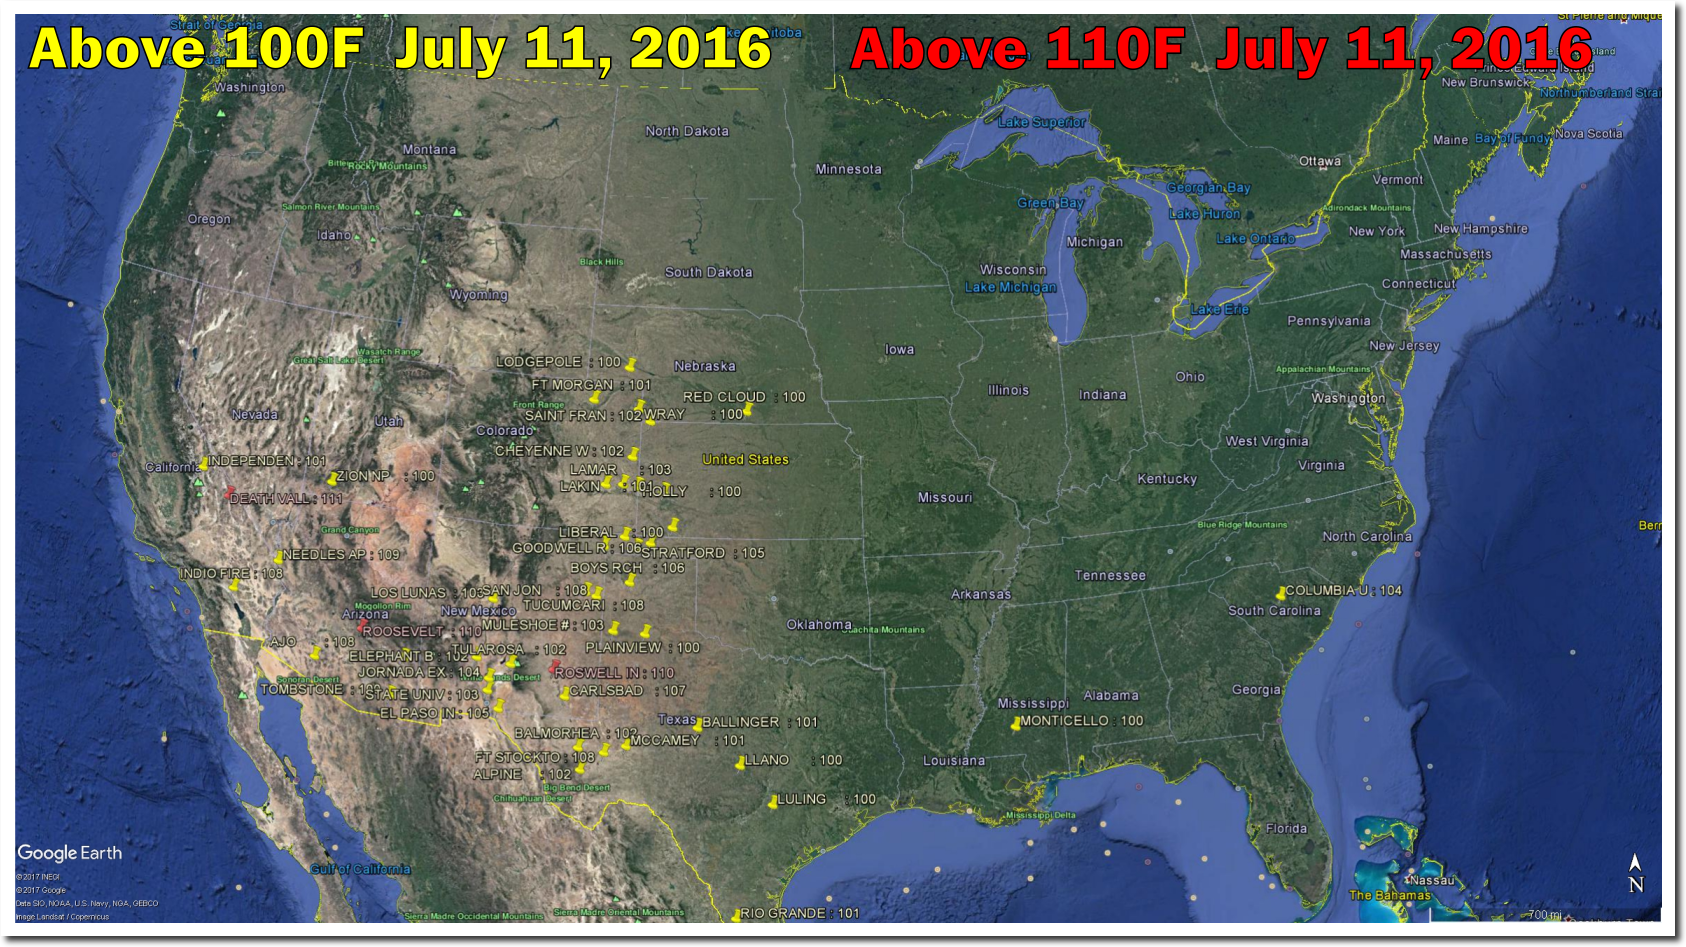 Plummeting July  Temperatures In The US The Deplorable Climate - Us weather map july